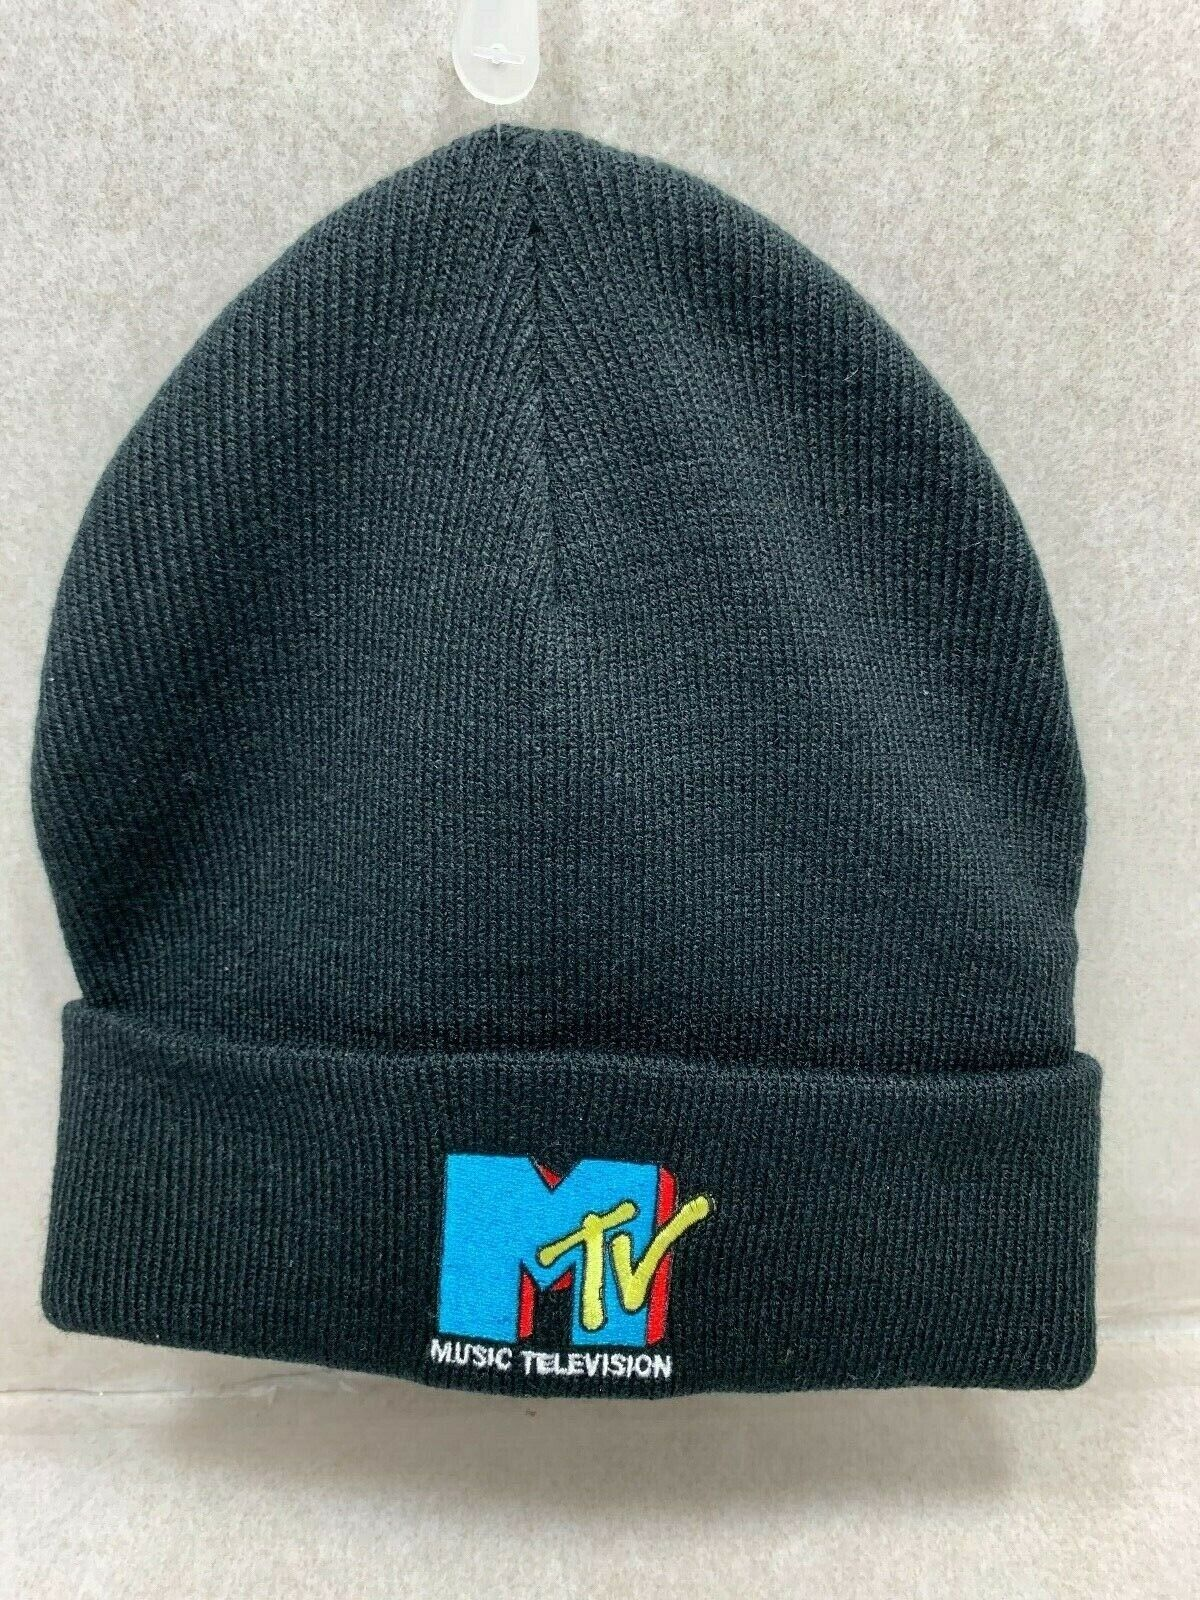 NEW MENS PULL ON BEANIES TIMBERLAND PENGUIN DOCKERS TOMMY HILFIGER  SEAN JOHNS Clothing, Shoes & Accessories